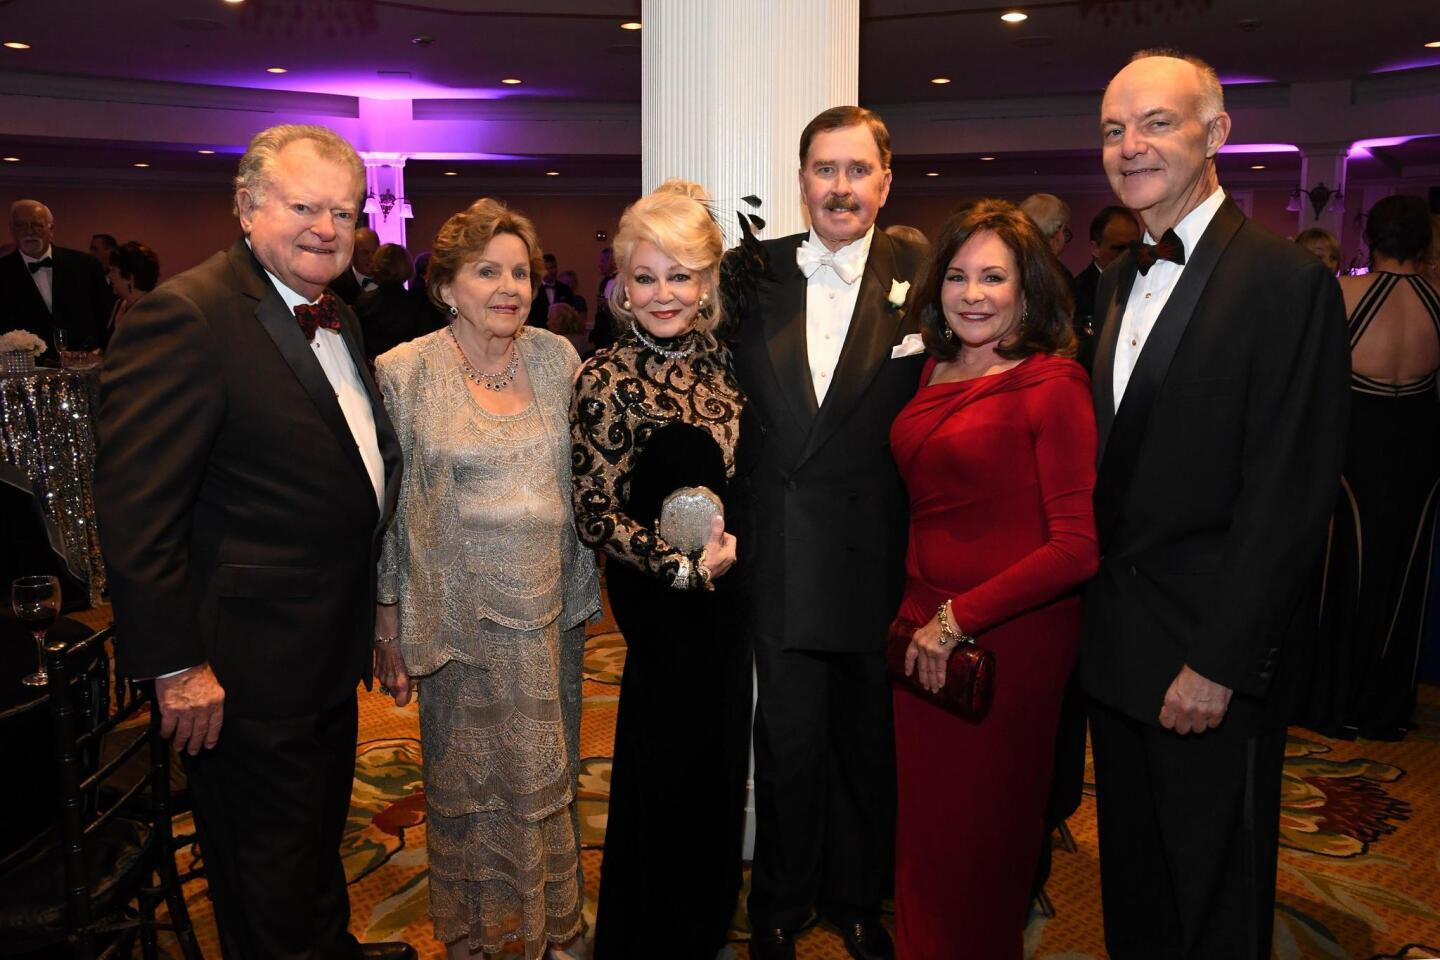 John Thornton, Anne Evans, Phyllis and John Parrish (she's ball chair), Drs. Jean Wickersham and Donald Kearns (he's Rady Children's President/CEO)